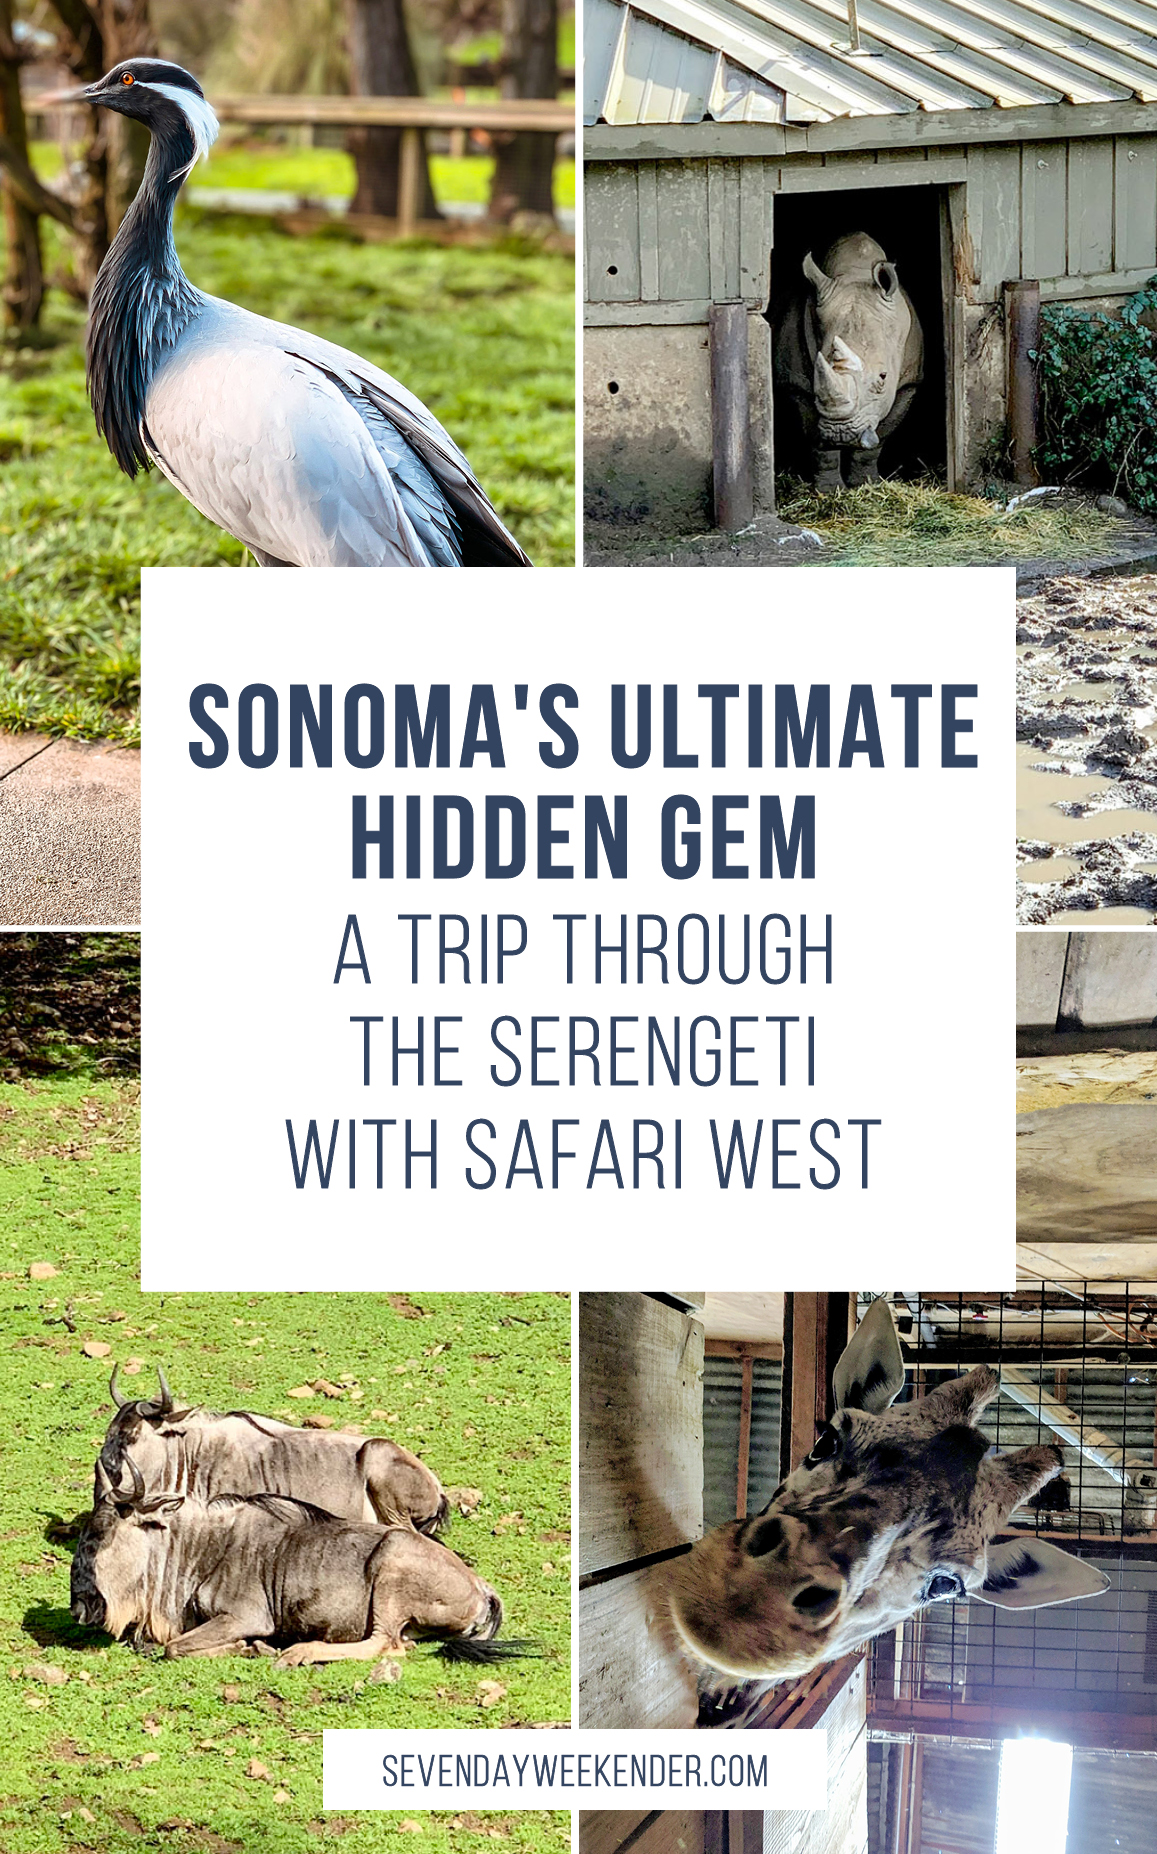 Sonoma's Ultimate Hidden Gem: Safari West